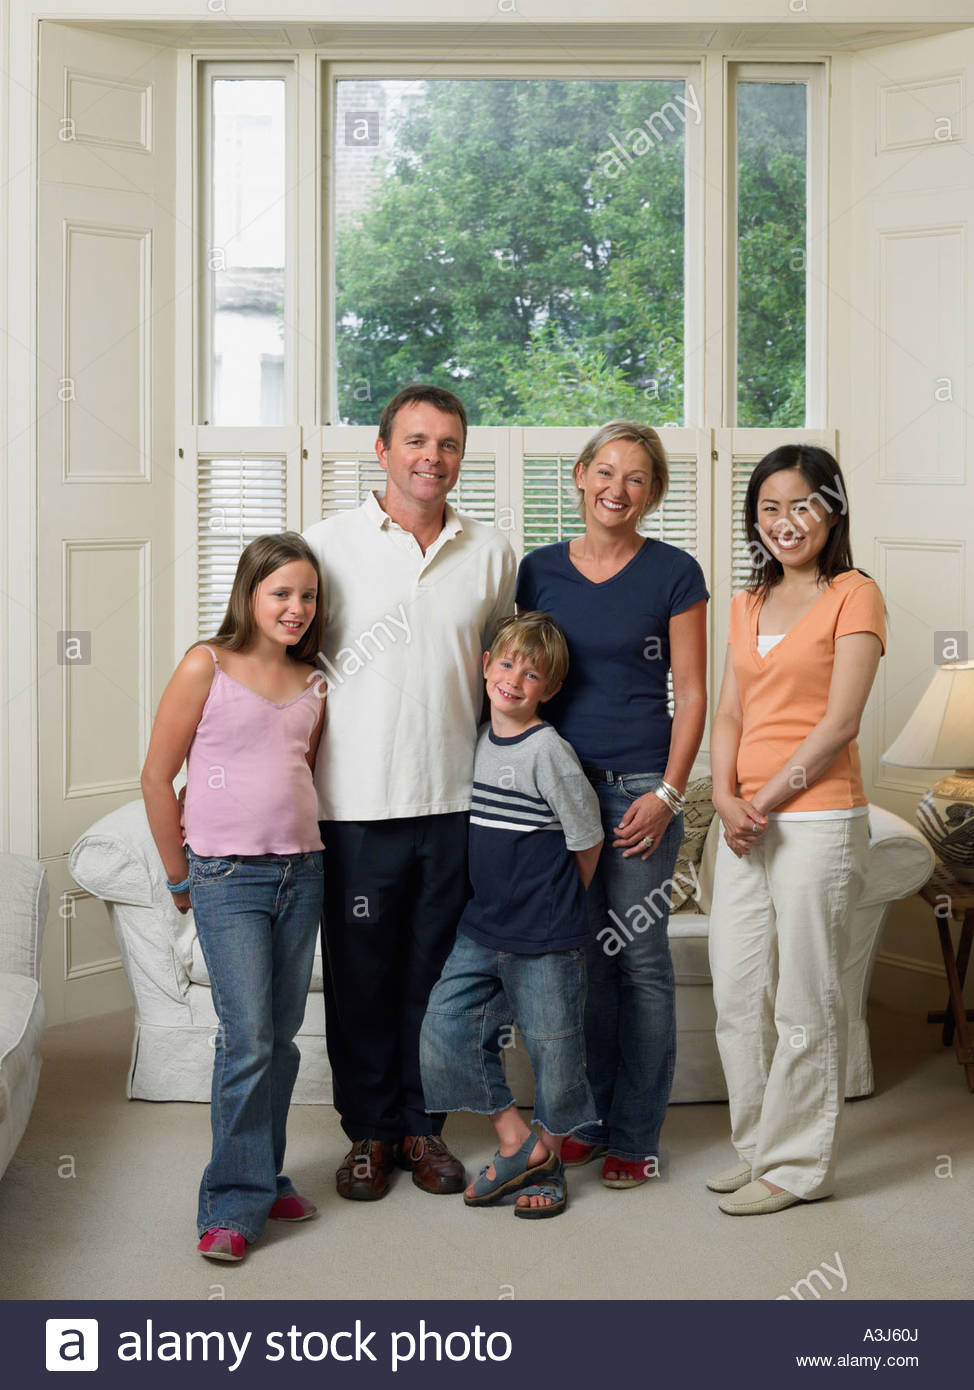 Japanese woman with english family - Stock Image